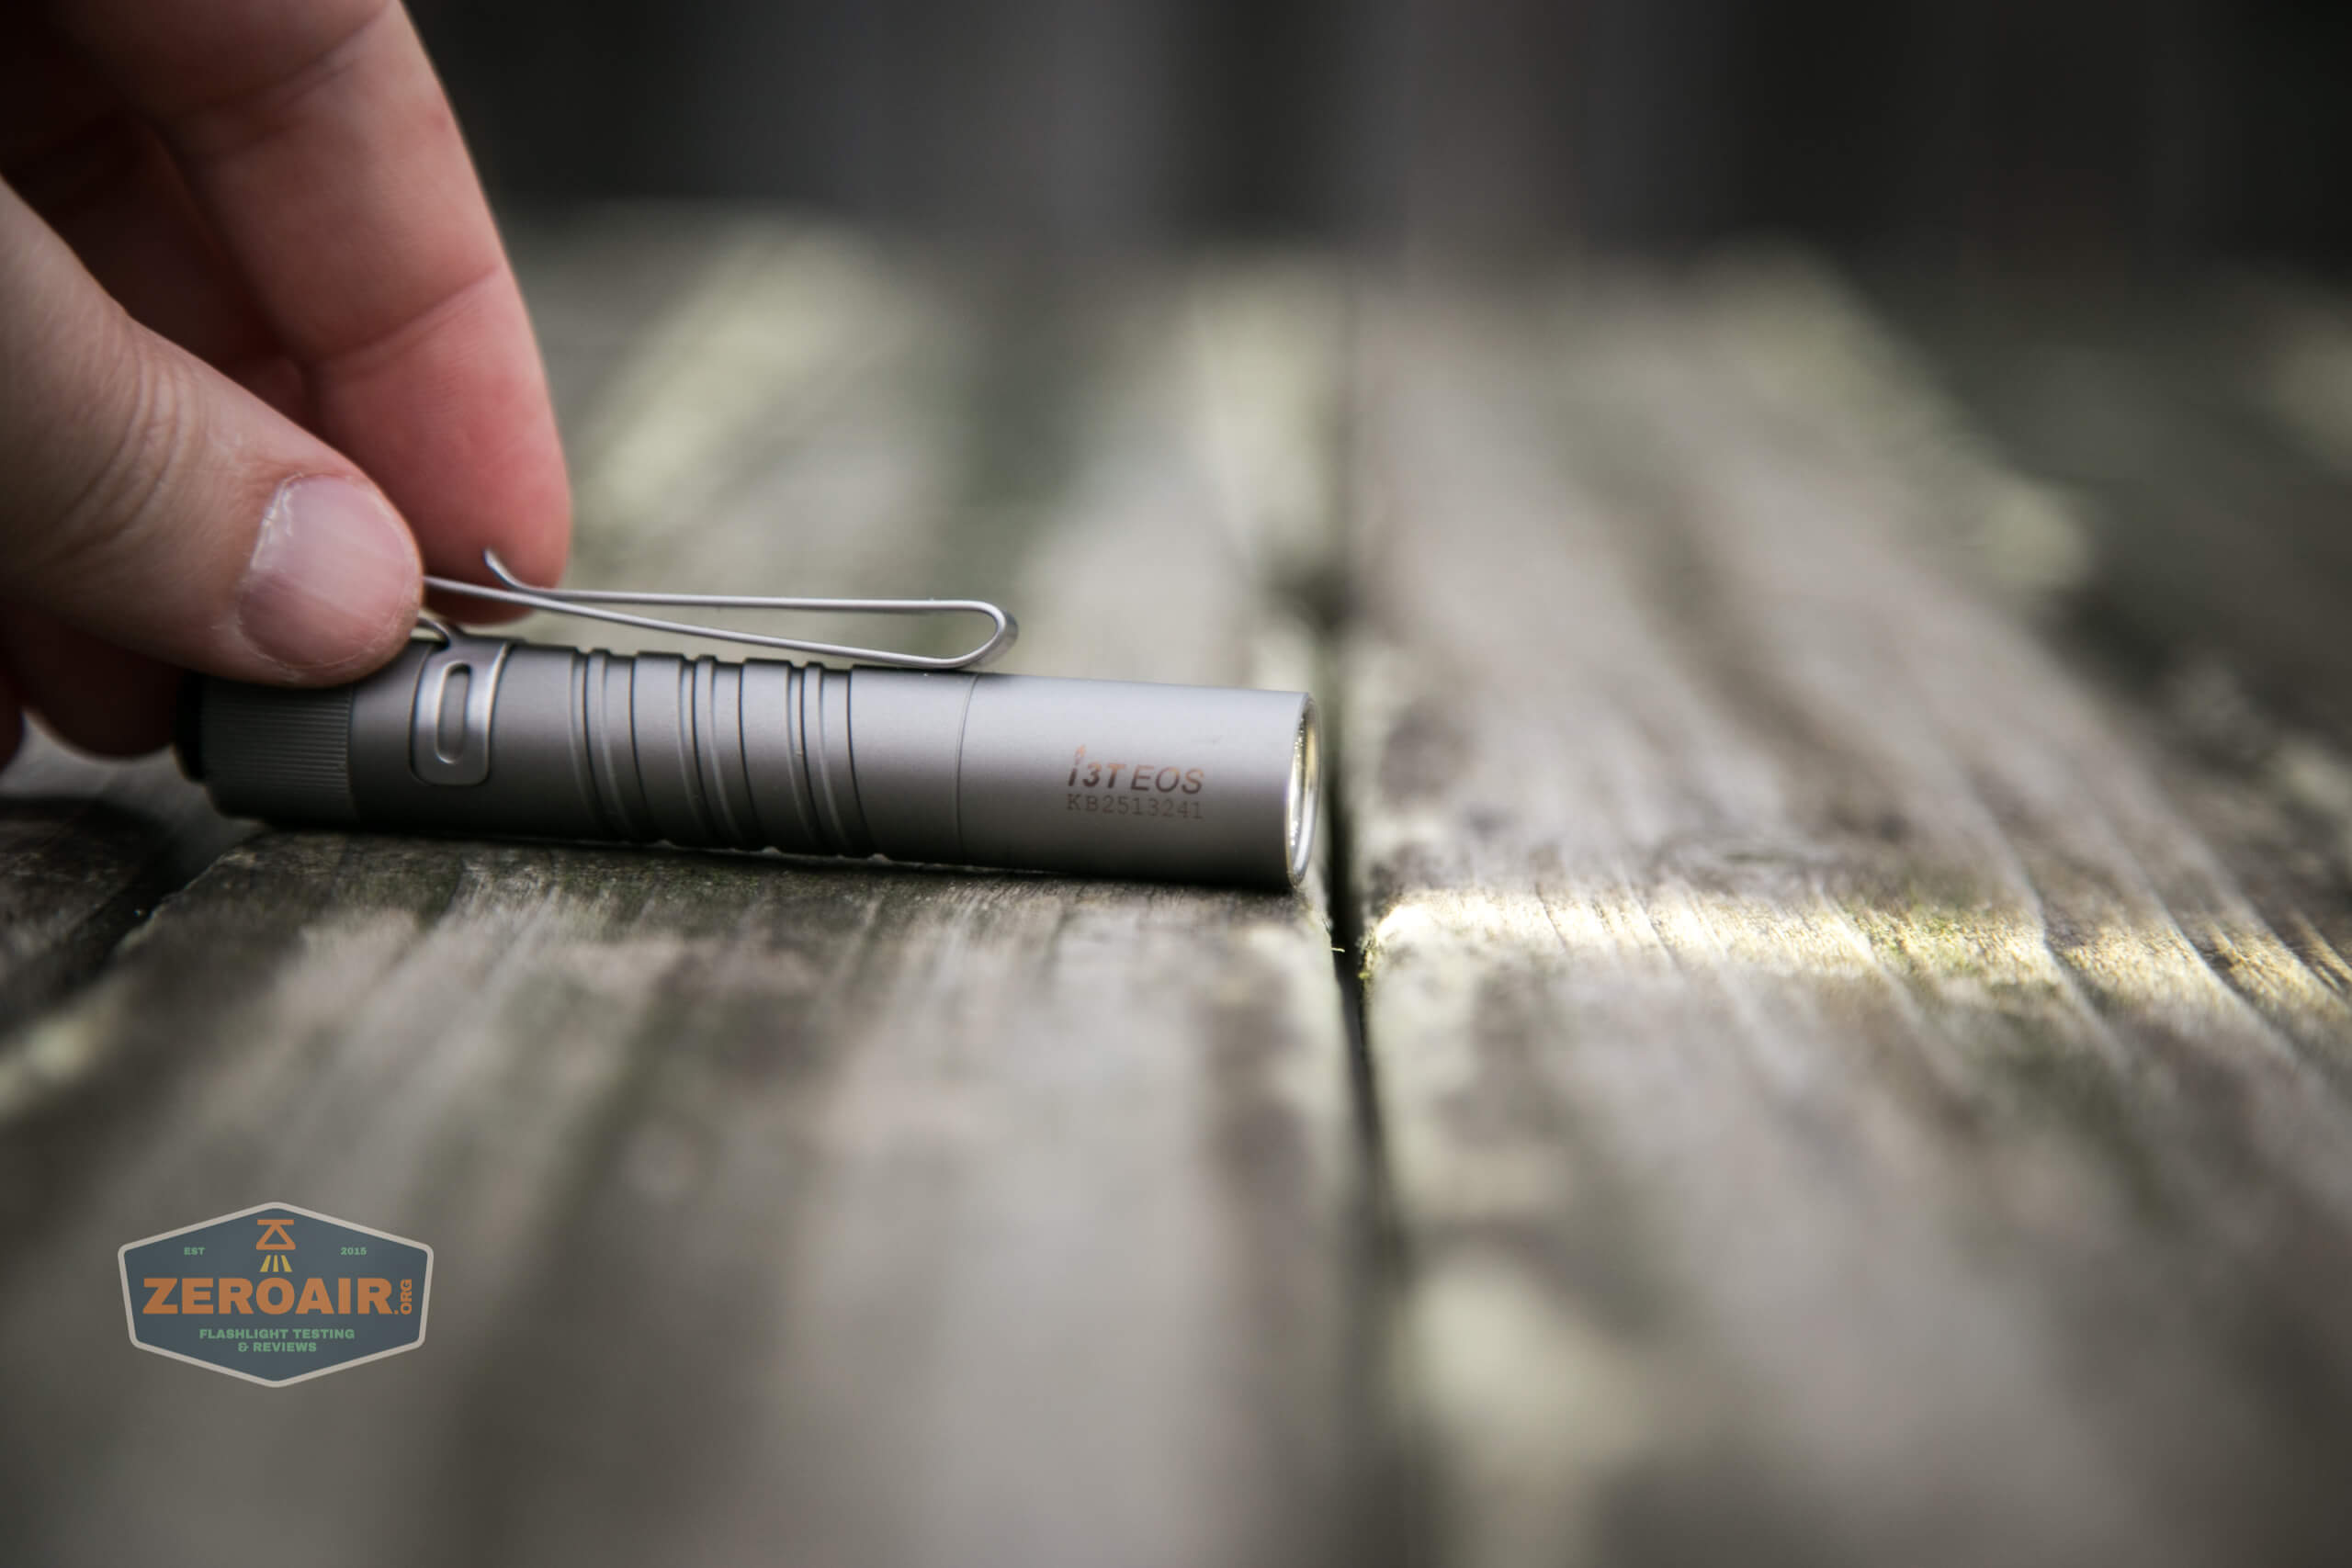 olight i3t eos titanium aaa flashlight on